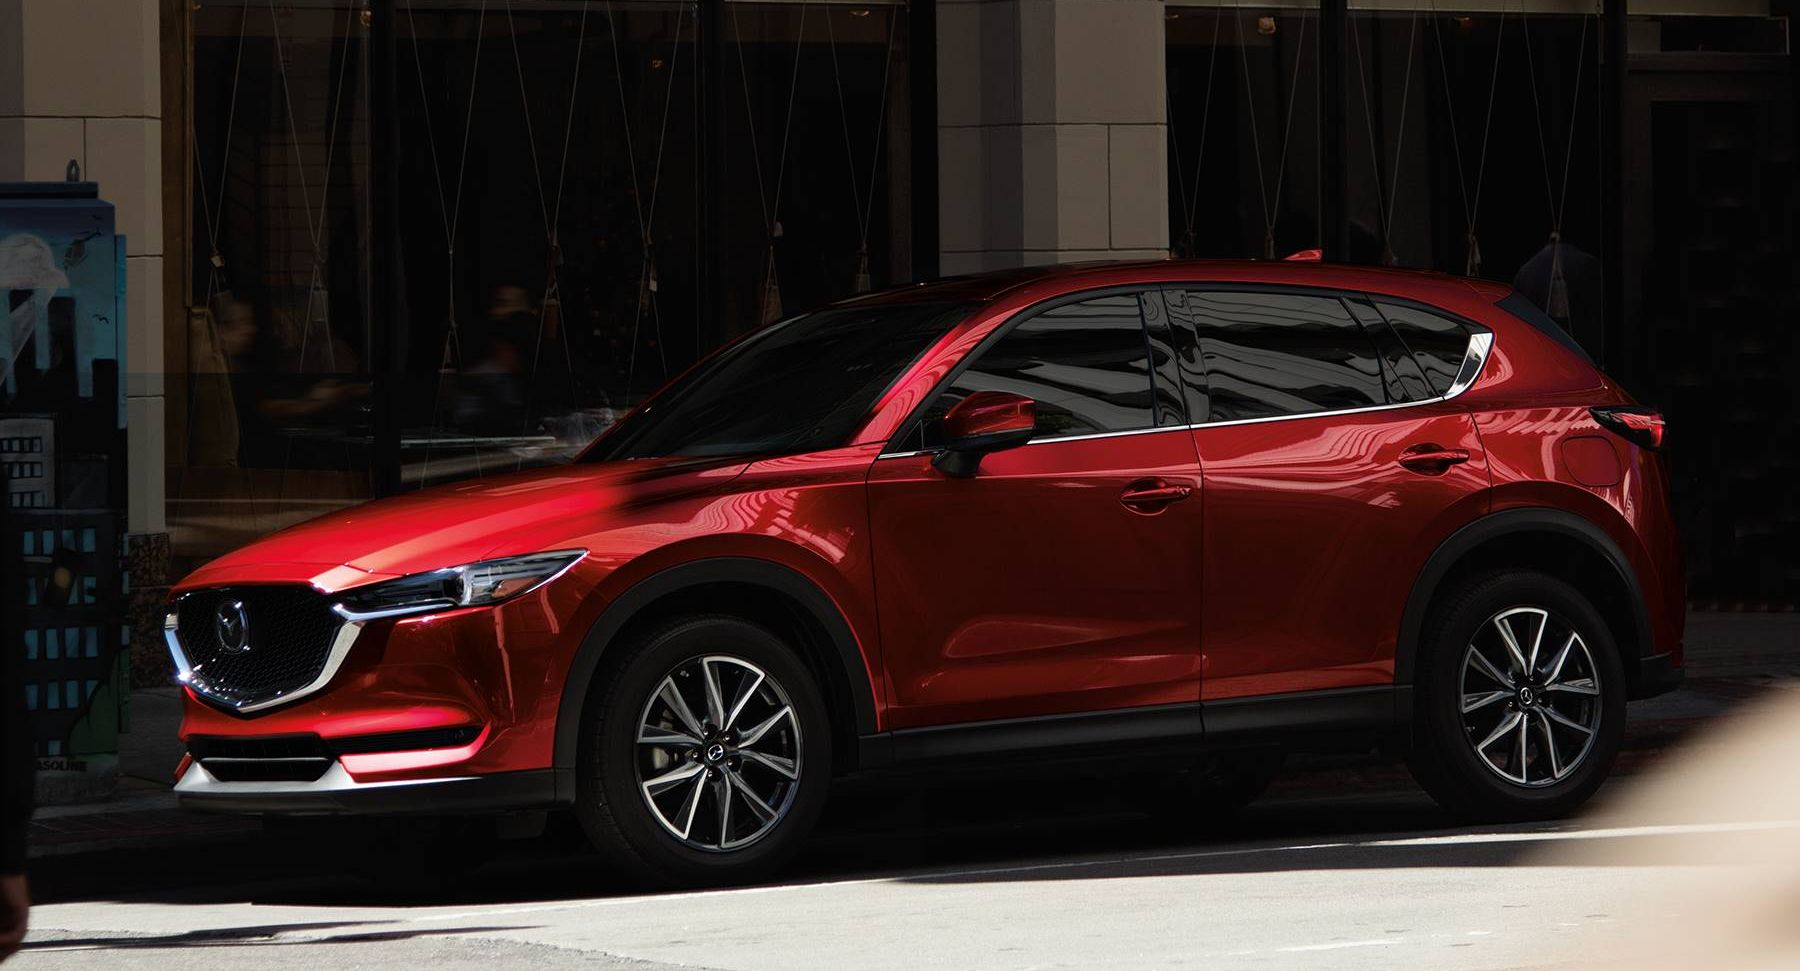 2018 Mazda CX-5 vs 2019 Jeep Cherokee near Phoenix, AZ